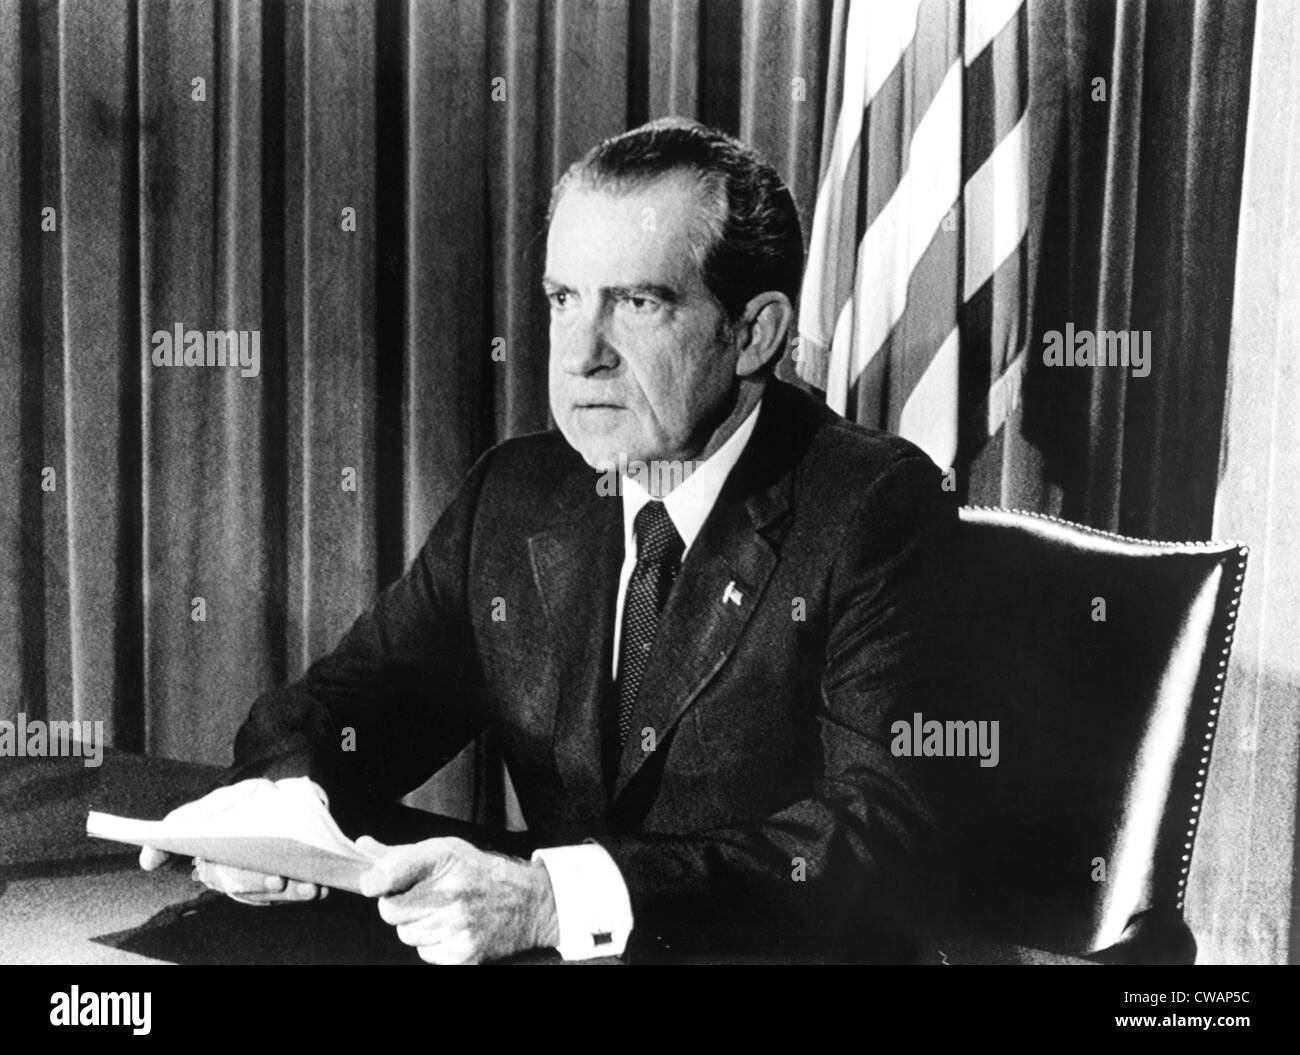 President Richard Nixon announcing his resignation, 08/08/74. Courtesy: CSU Archives / Everett Collection - Stock Image